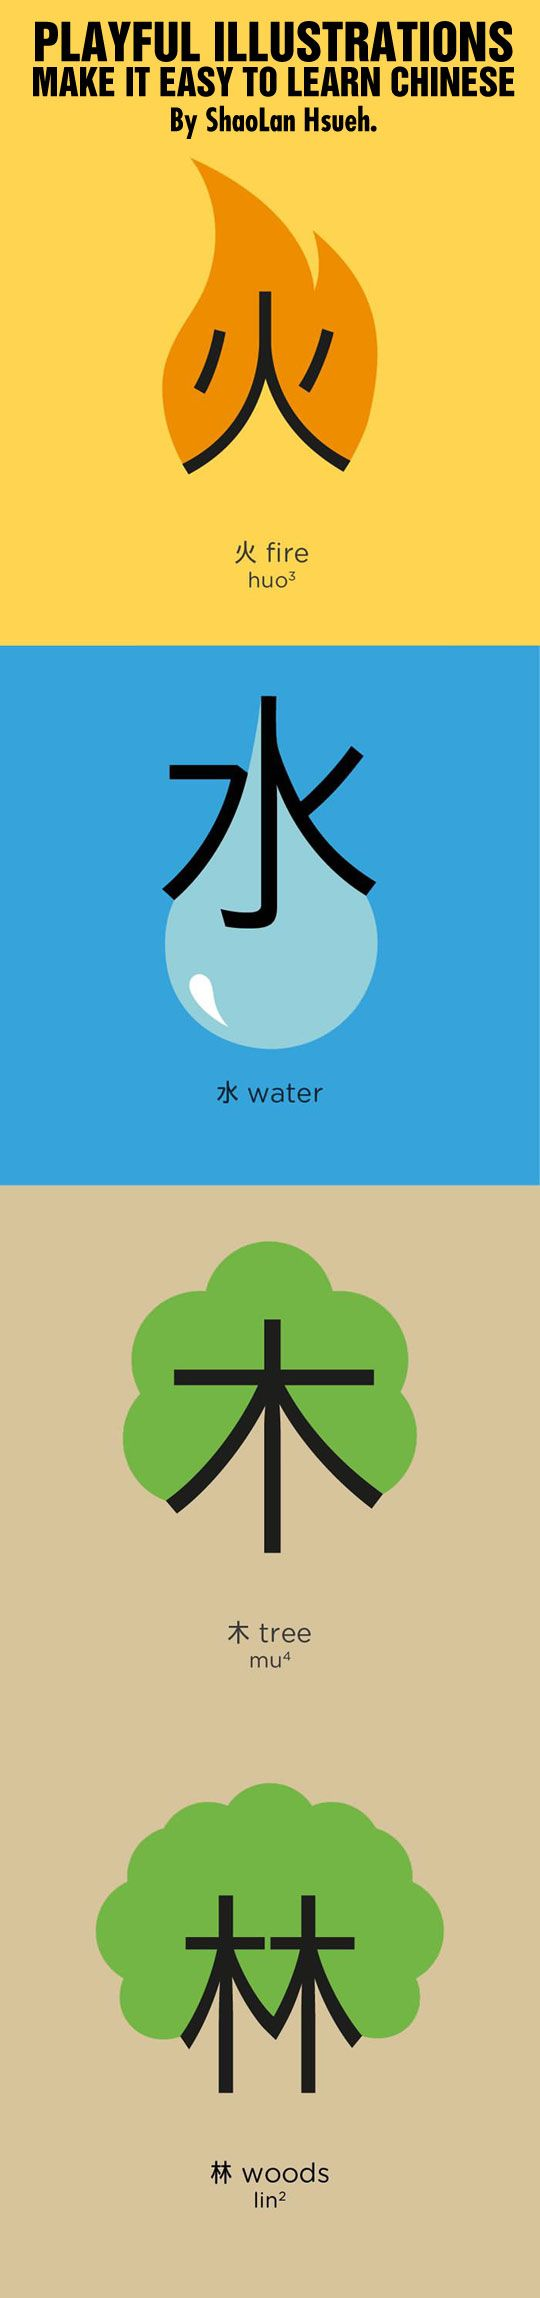 Playful illustrations make it easy to learn Chinese… I want this book